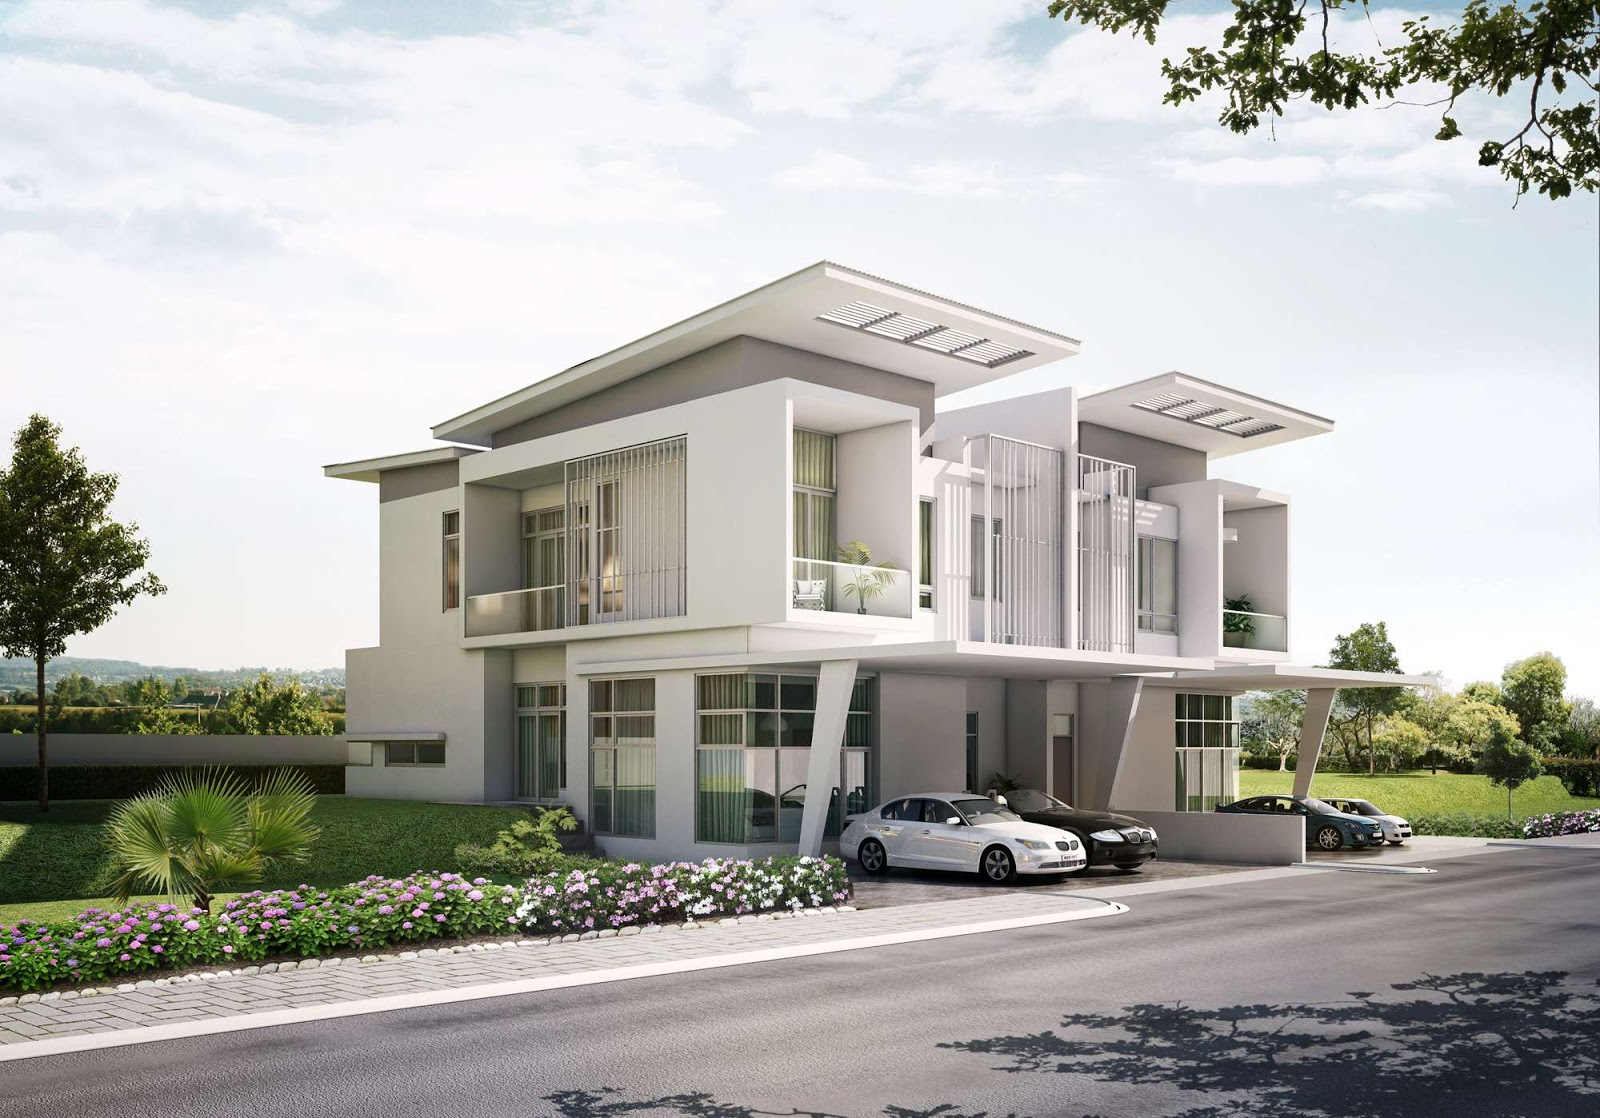 Singapore Modern Homes Exterior Designs on Dubai 3 Bedroom Townhouse Floor Plans